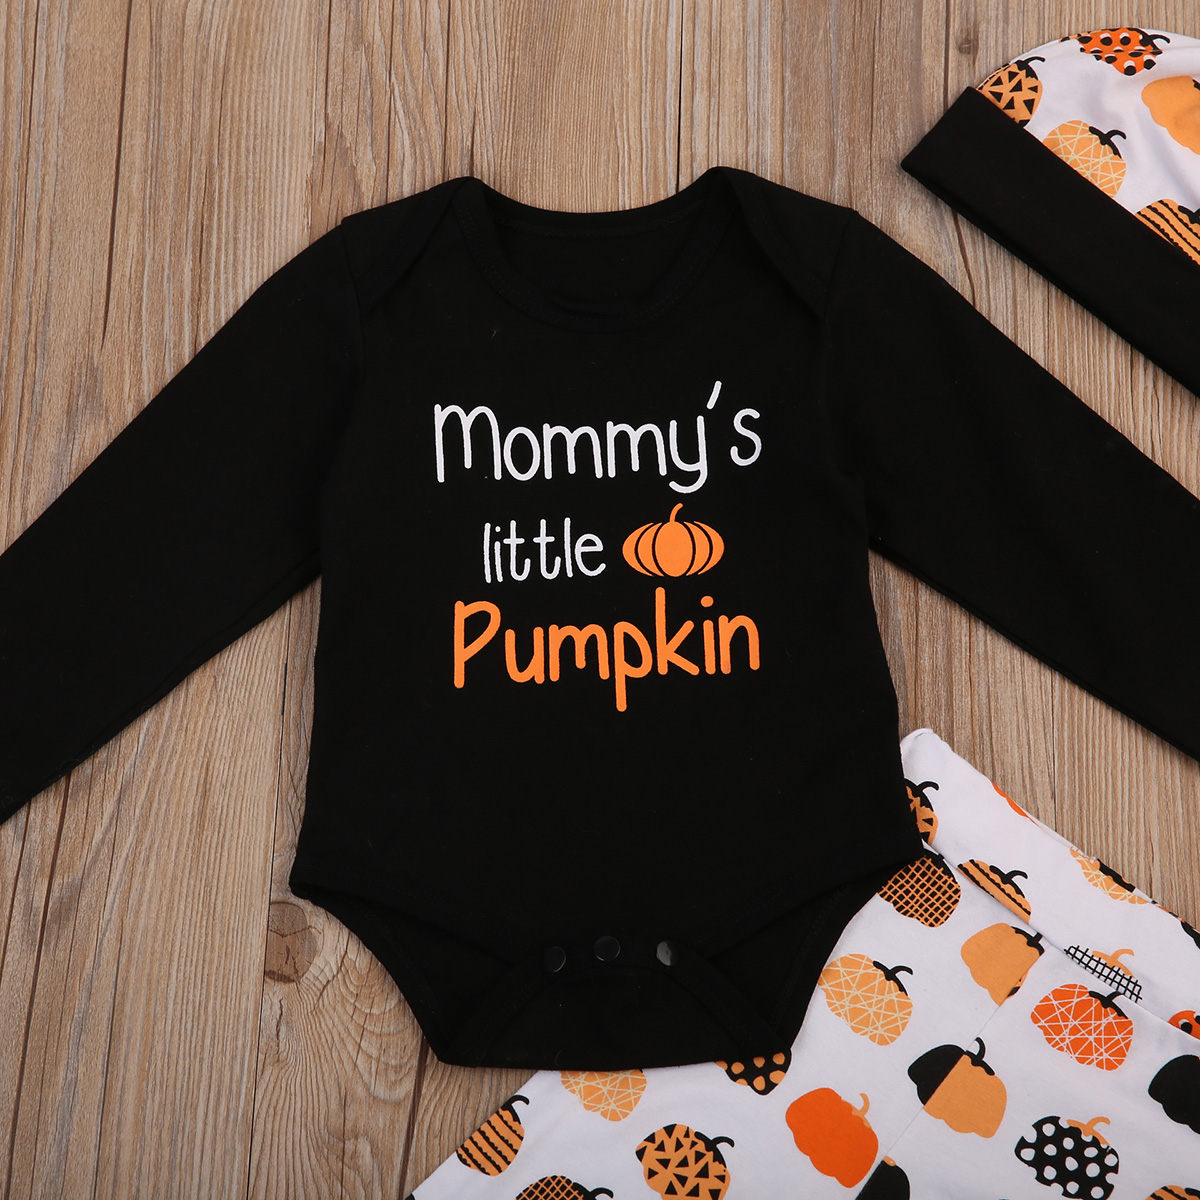 17 Cute Halloween Newborn Baby Boys Girls Winter Clothes Long Sleeve Romper Pants Leggings Cotton Pumpkin Print Outfit 3pcs 7